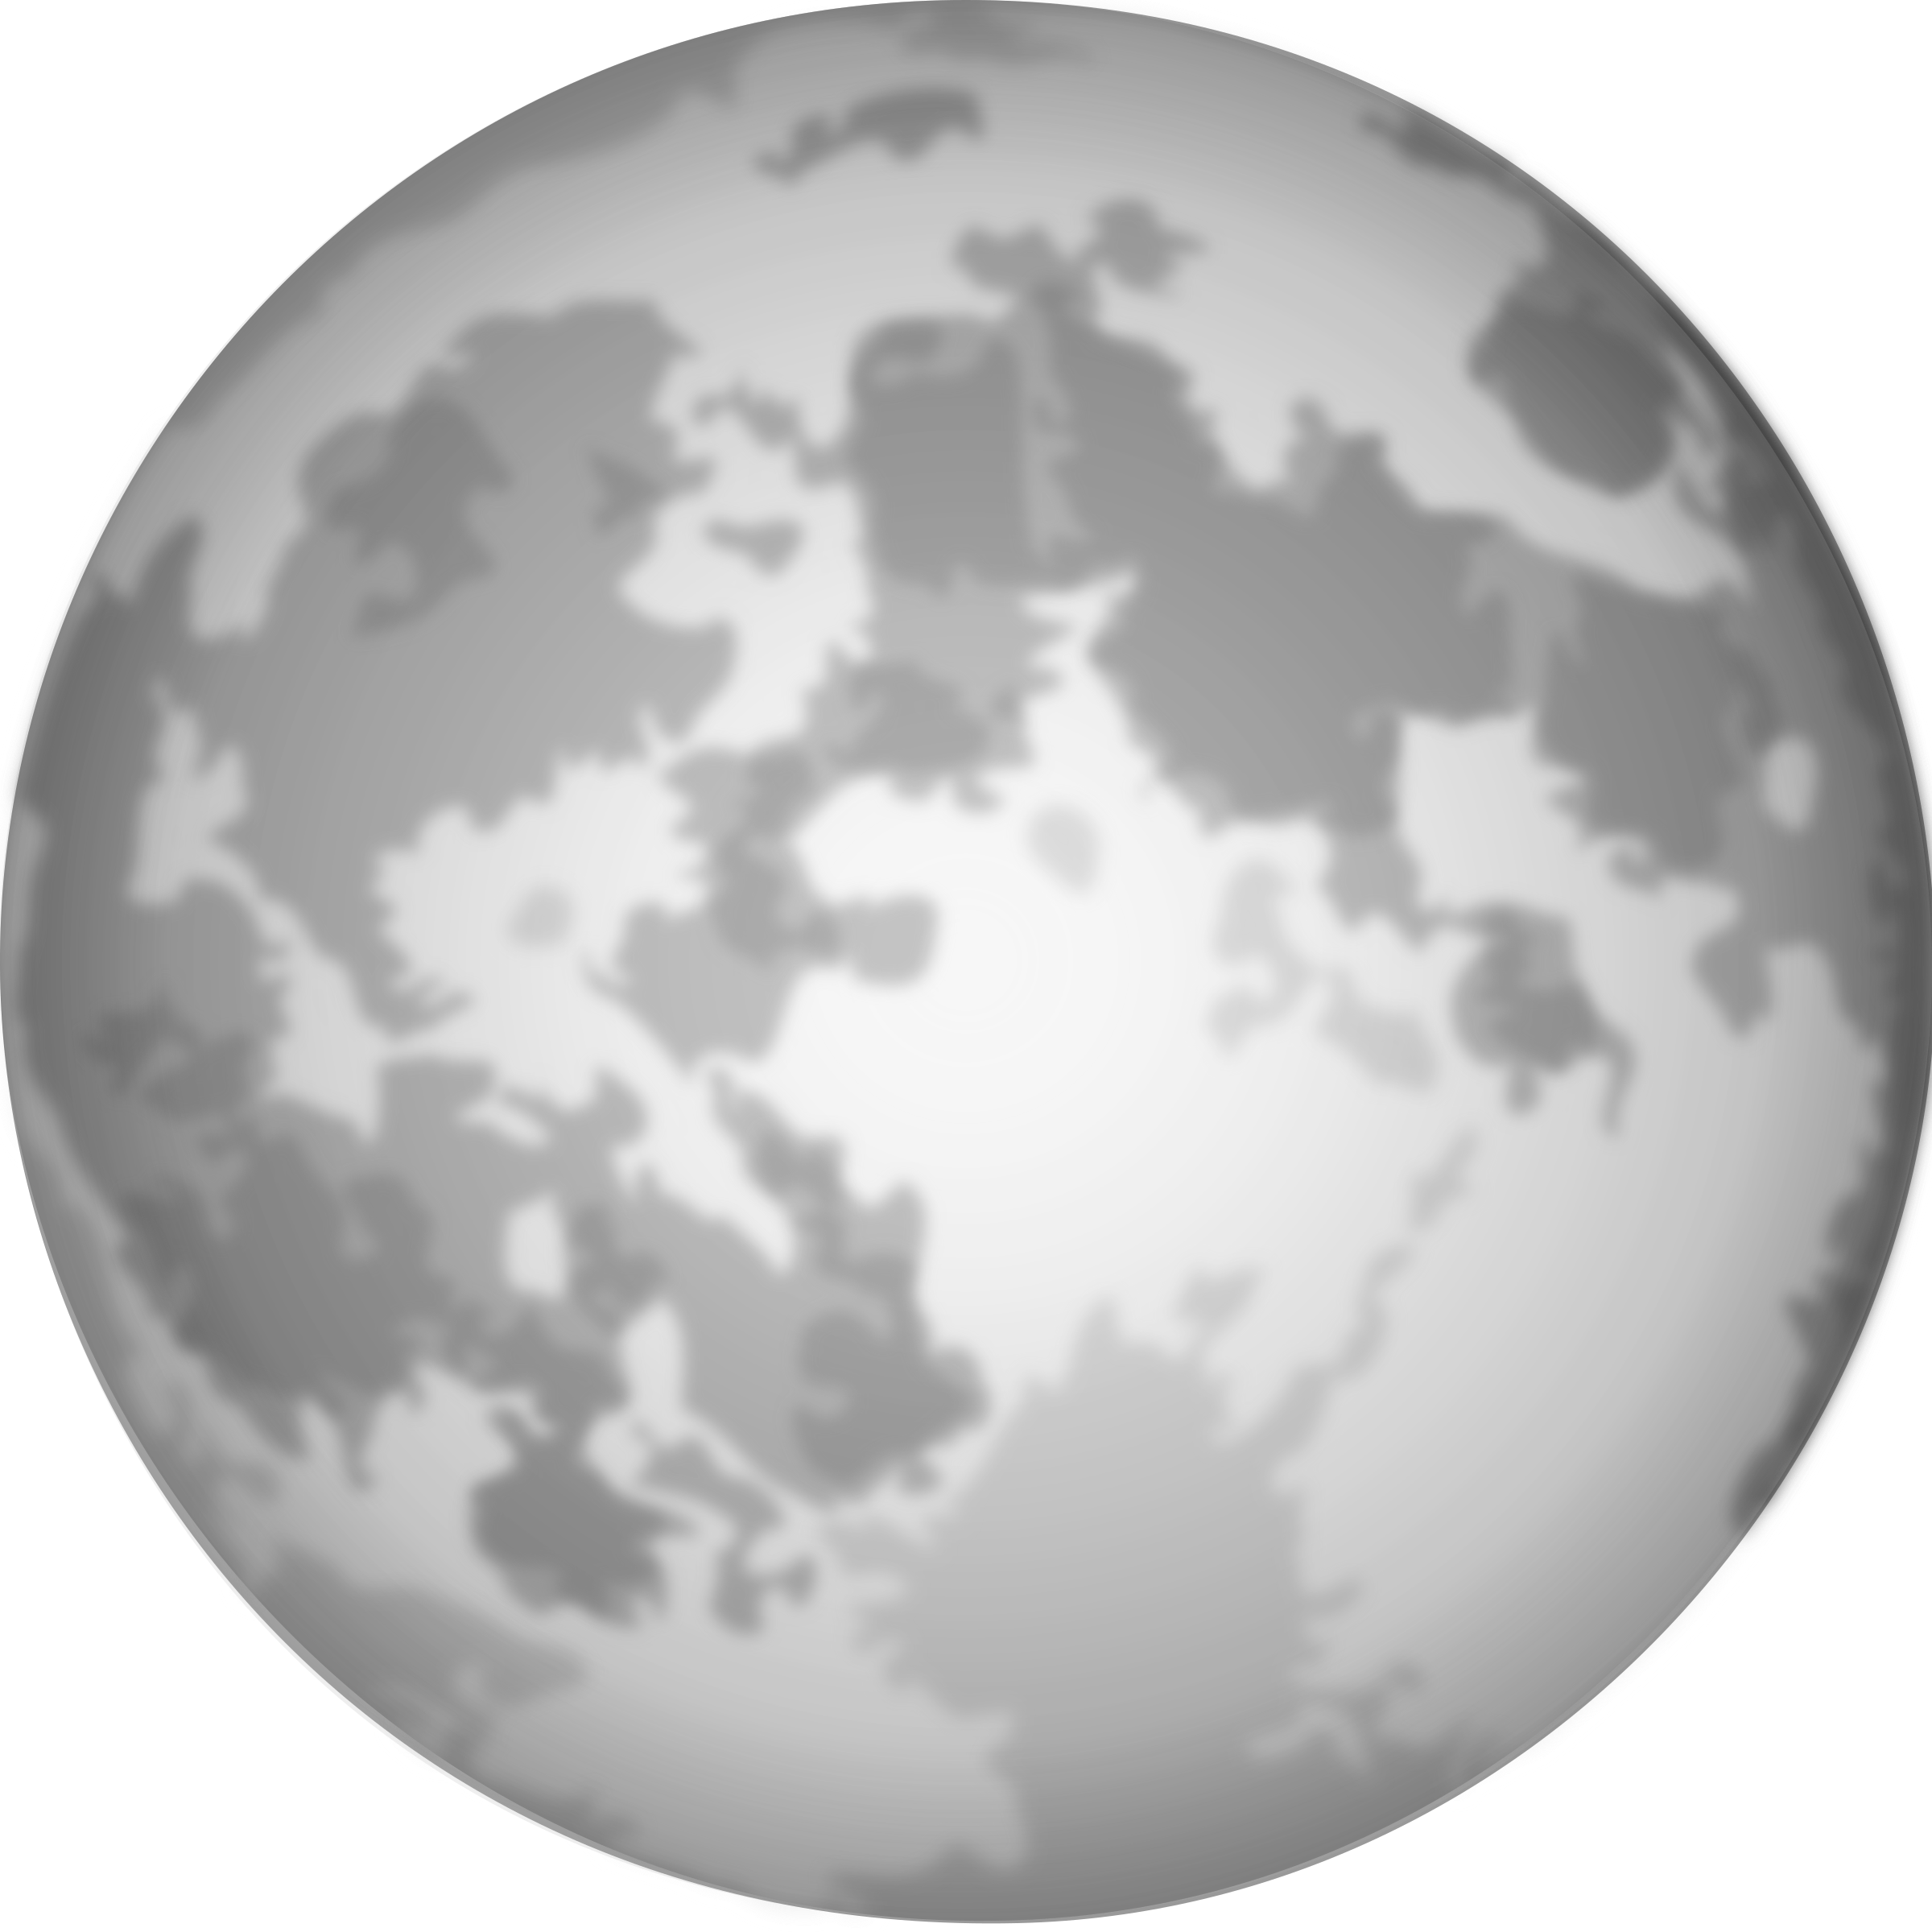 Sun and moon rotate clipart black and white png freeuse library Moon PNG images free download png freeuse library